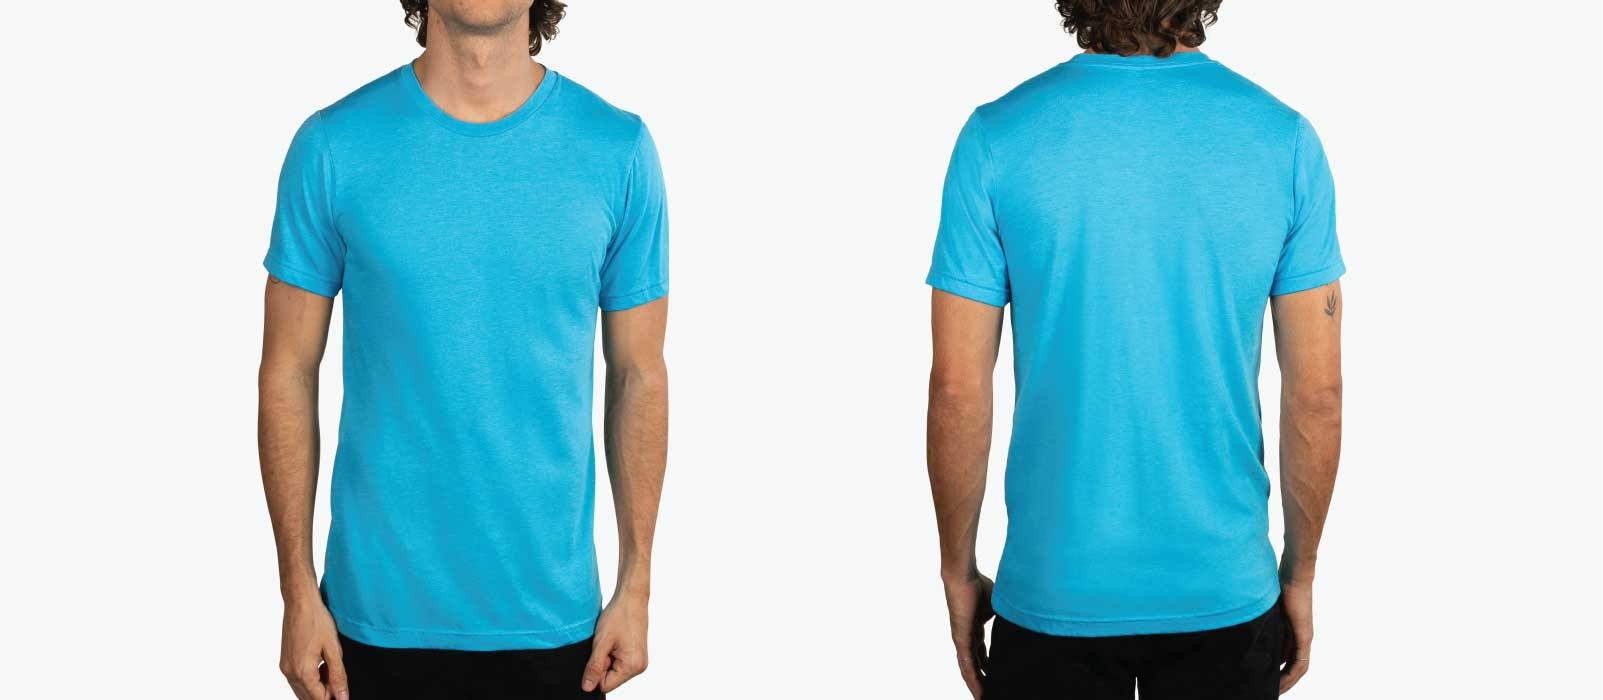 front and back picture of man modeling blue shirt